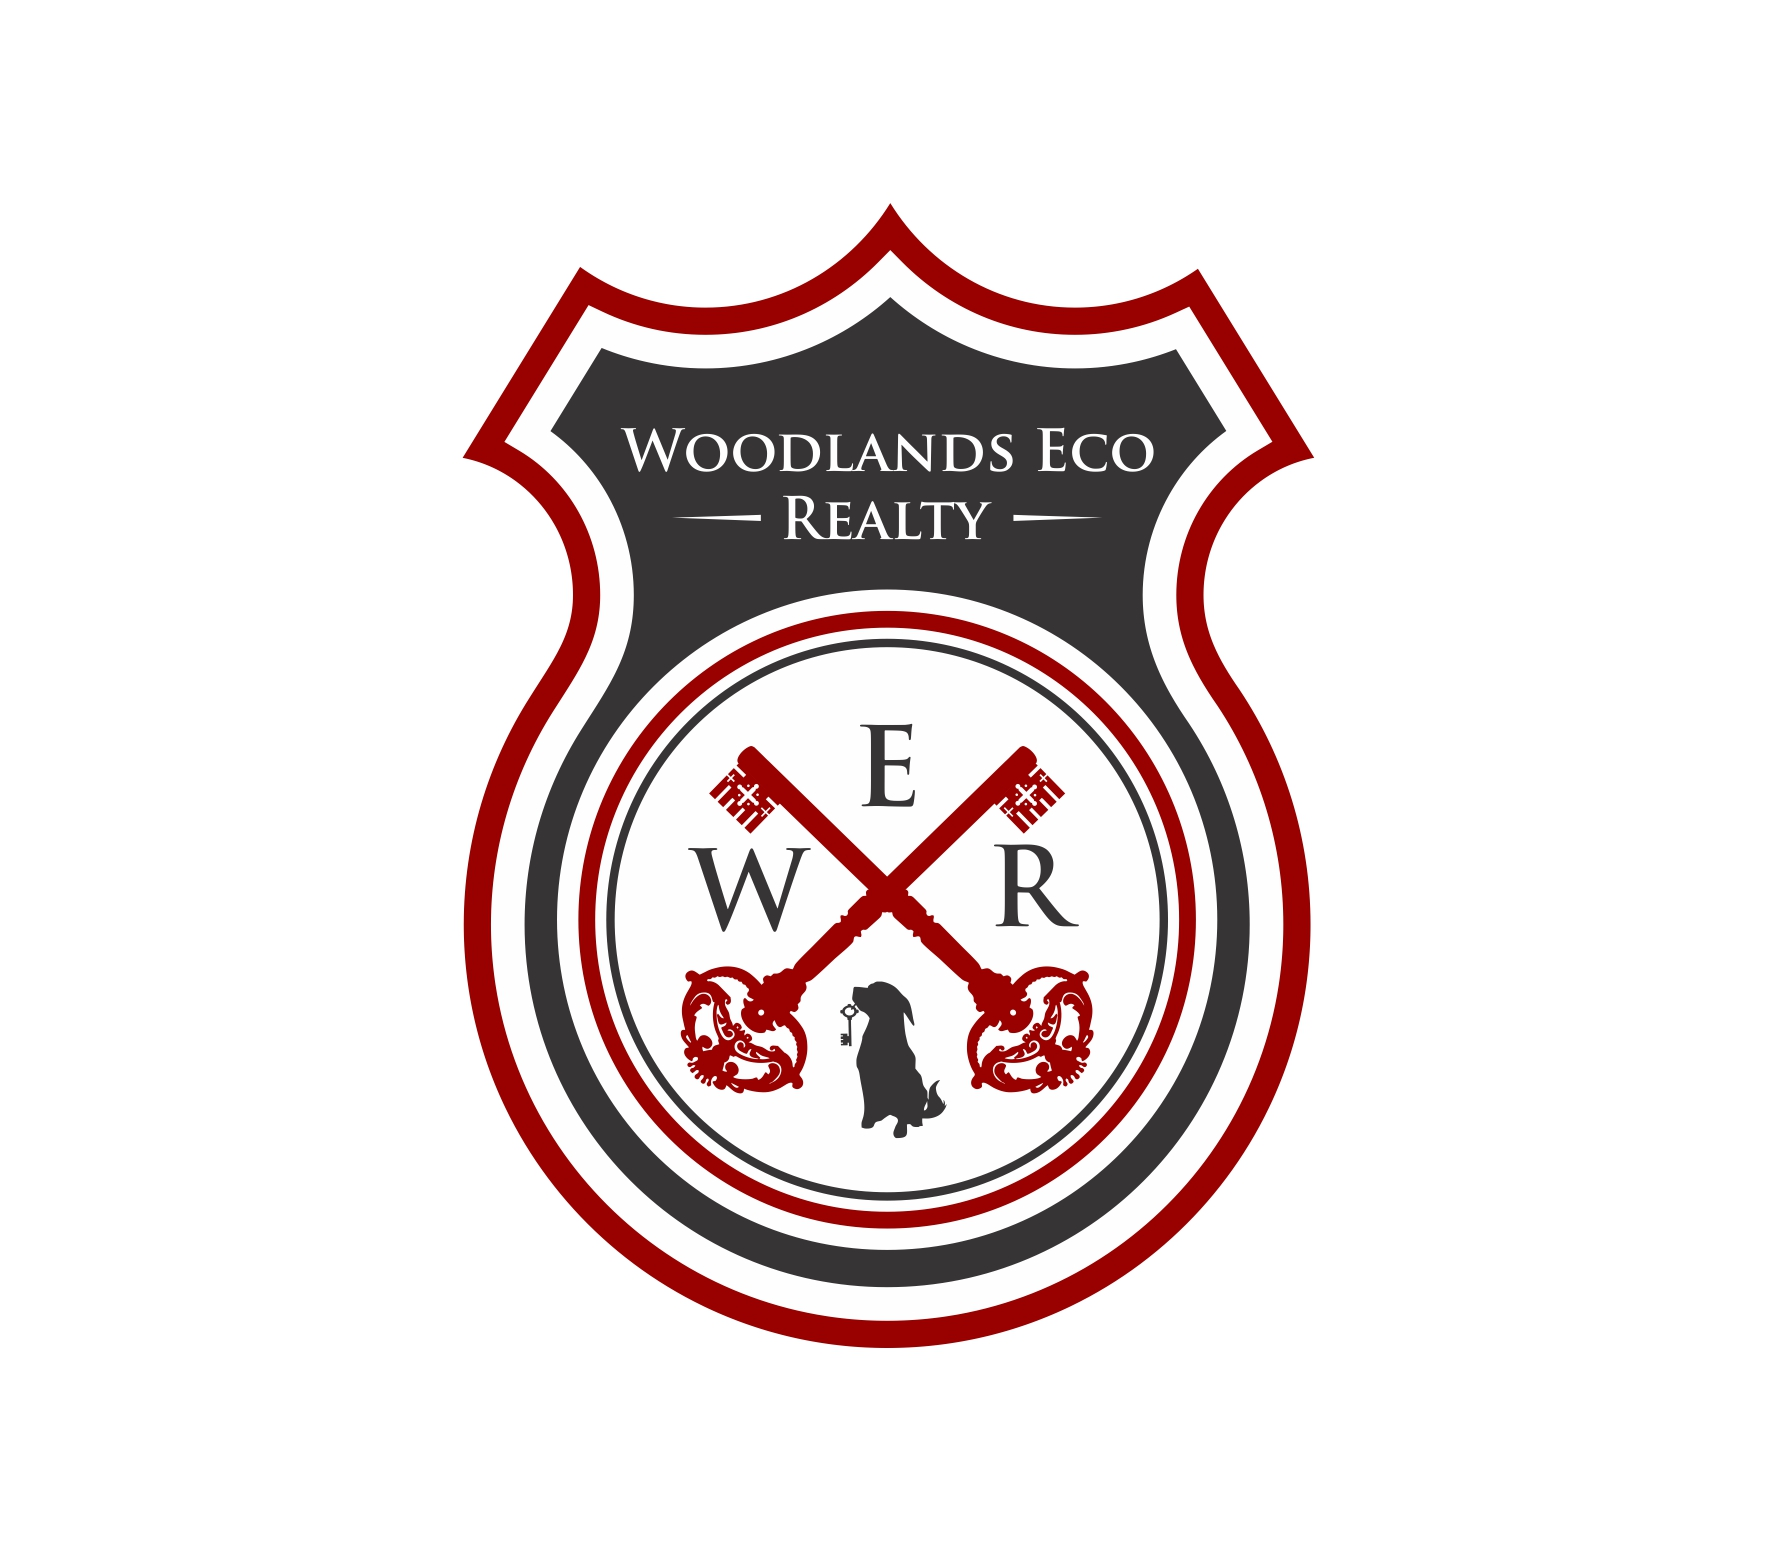 Woodlands Eco Realty logo